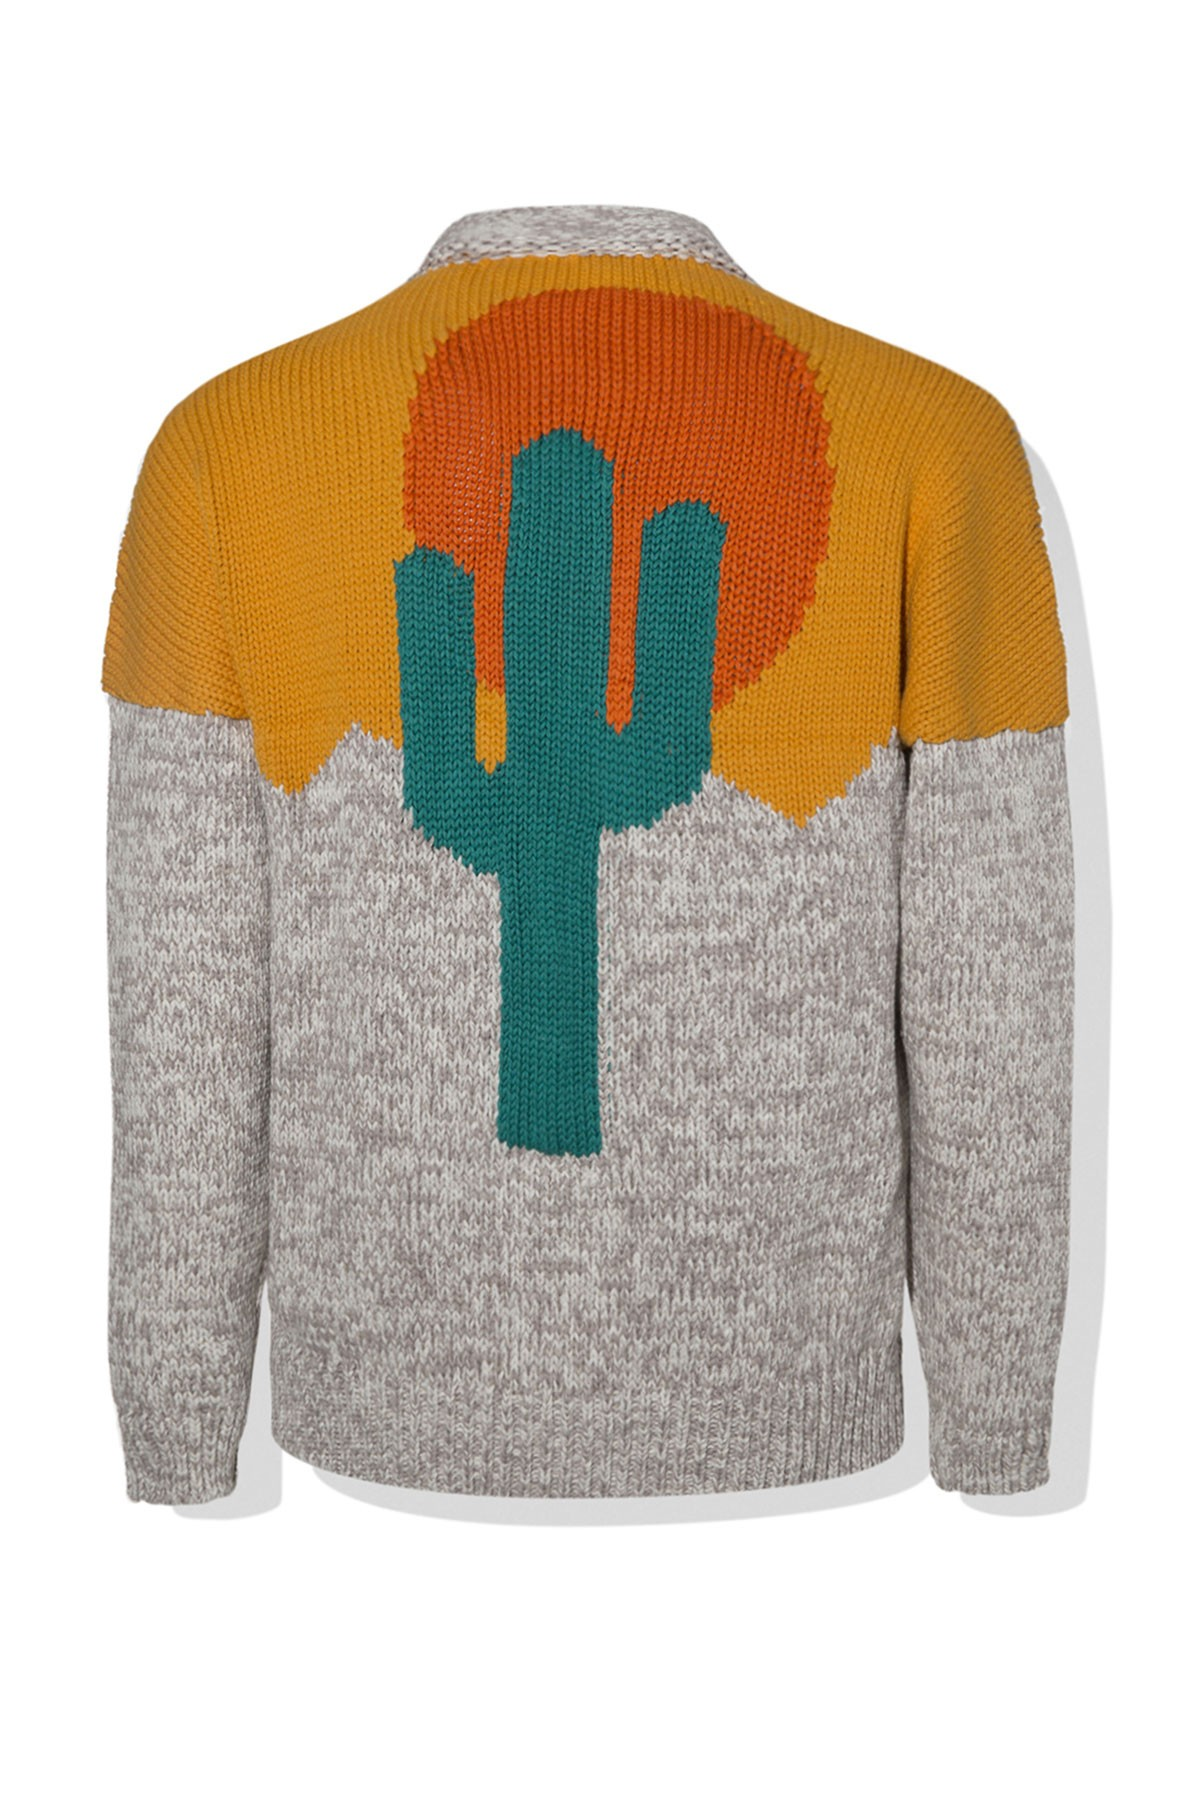 ARIZONA CARDIGAN